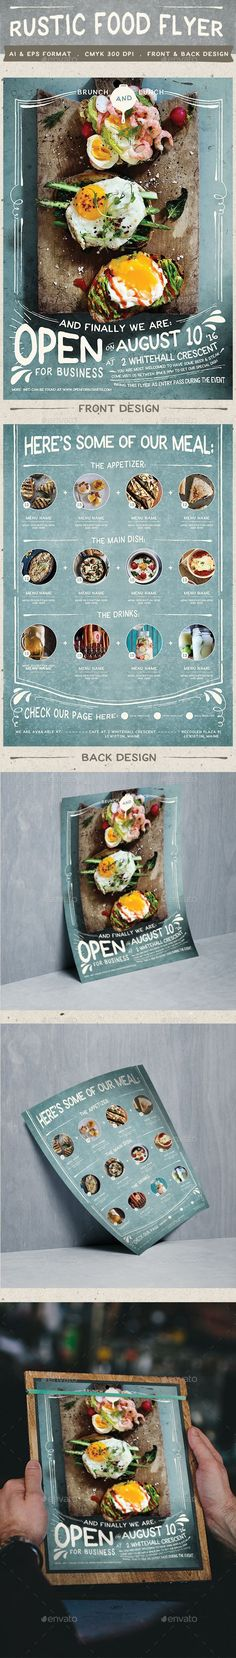 Rustic Food Promo Flyer Template #design Download: http://graphicriver.net/item/rustic-food-promo-flyer/12482053?ref=ksioks